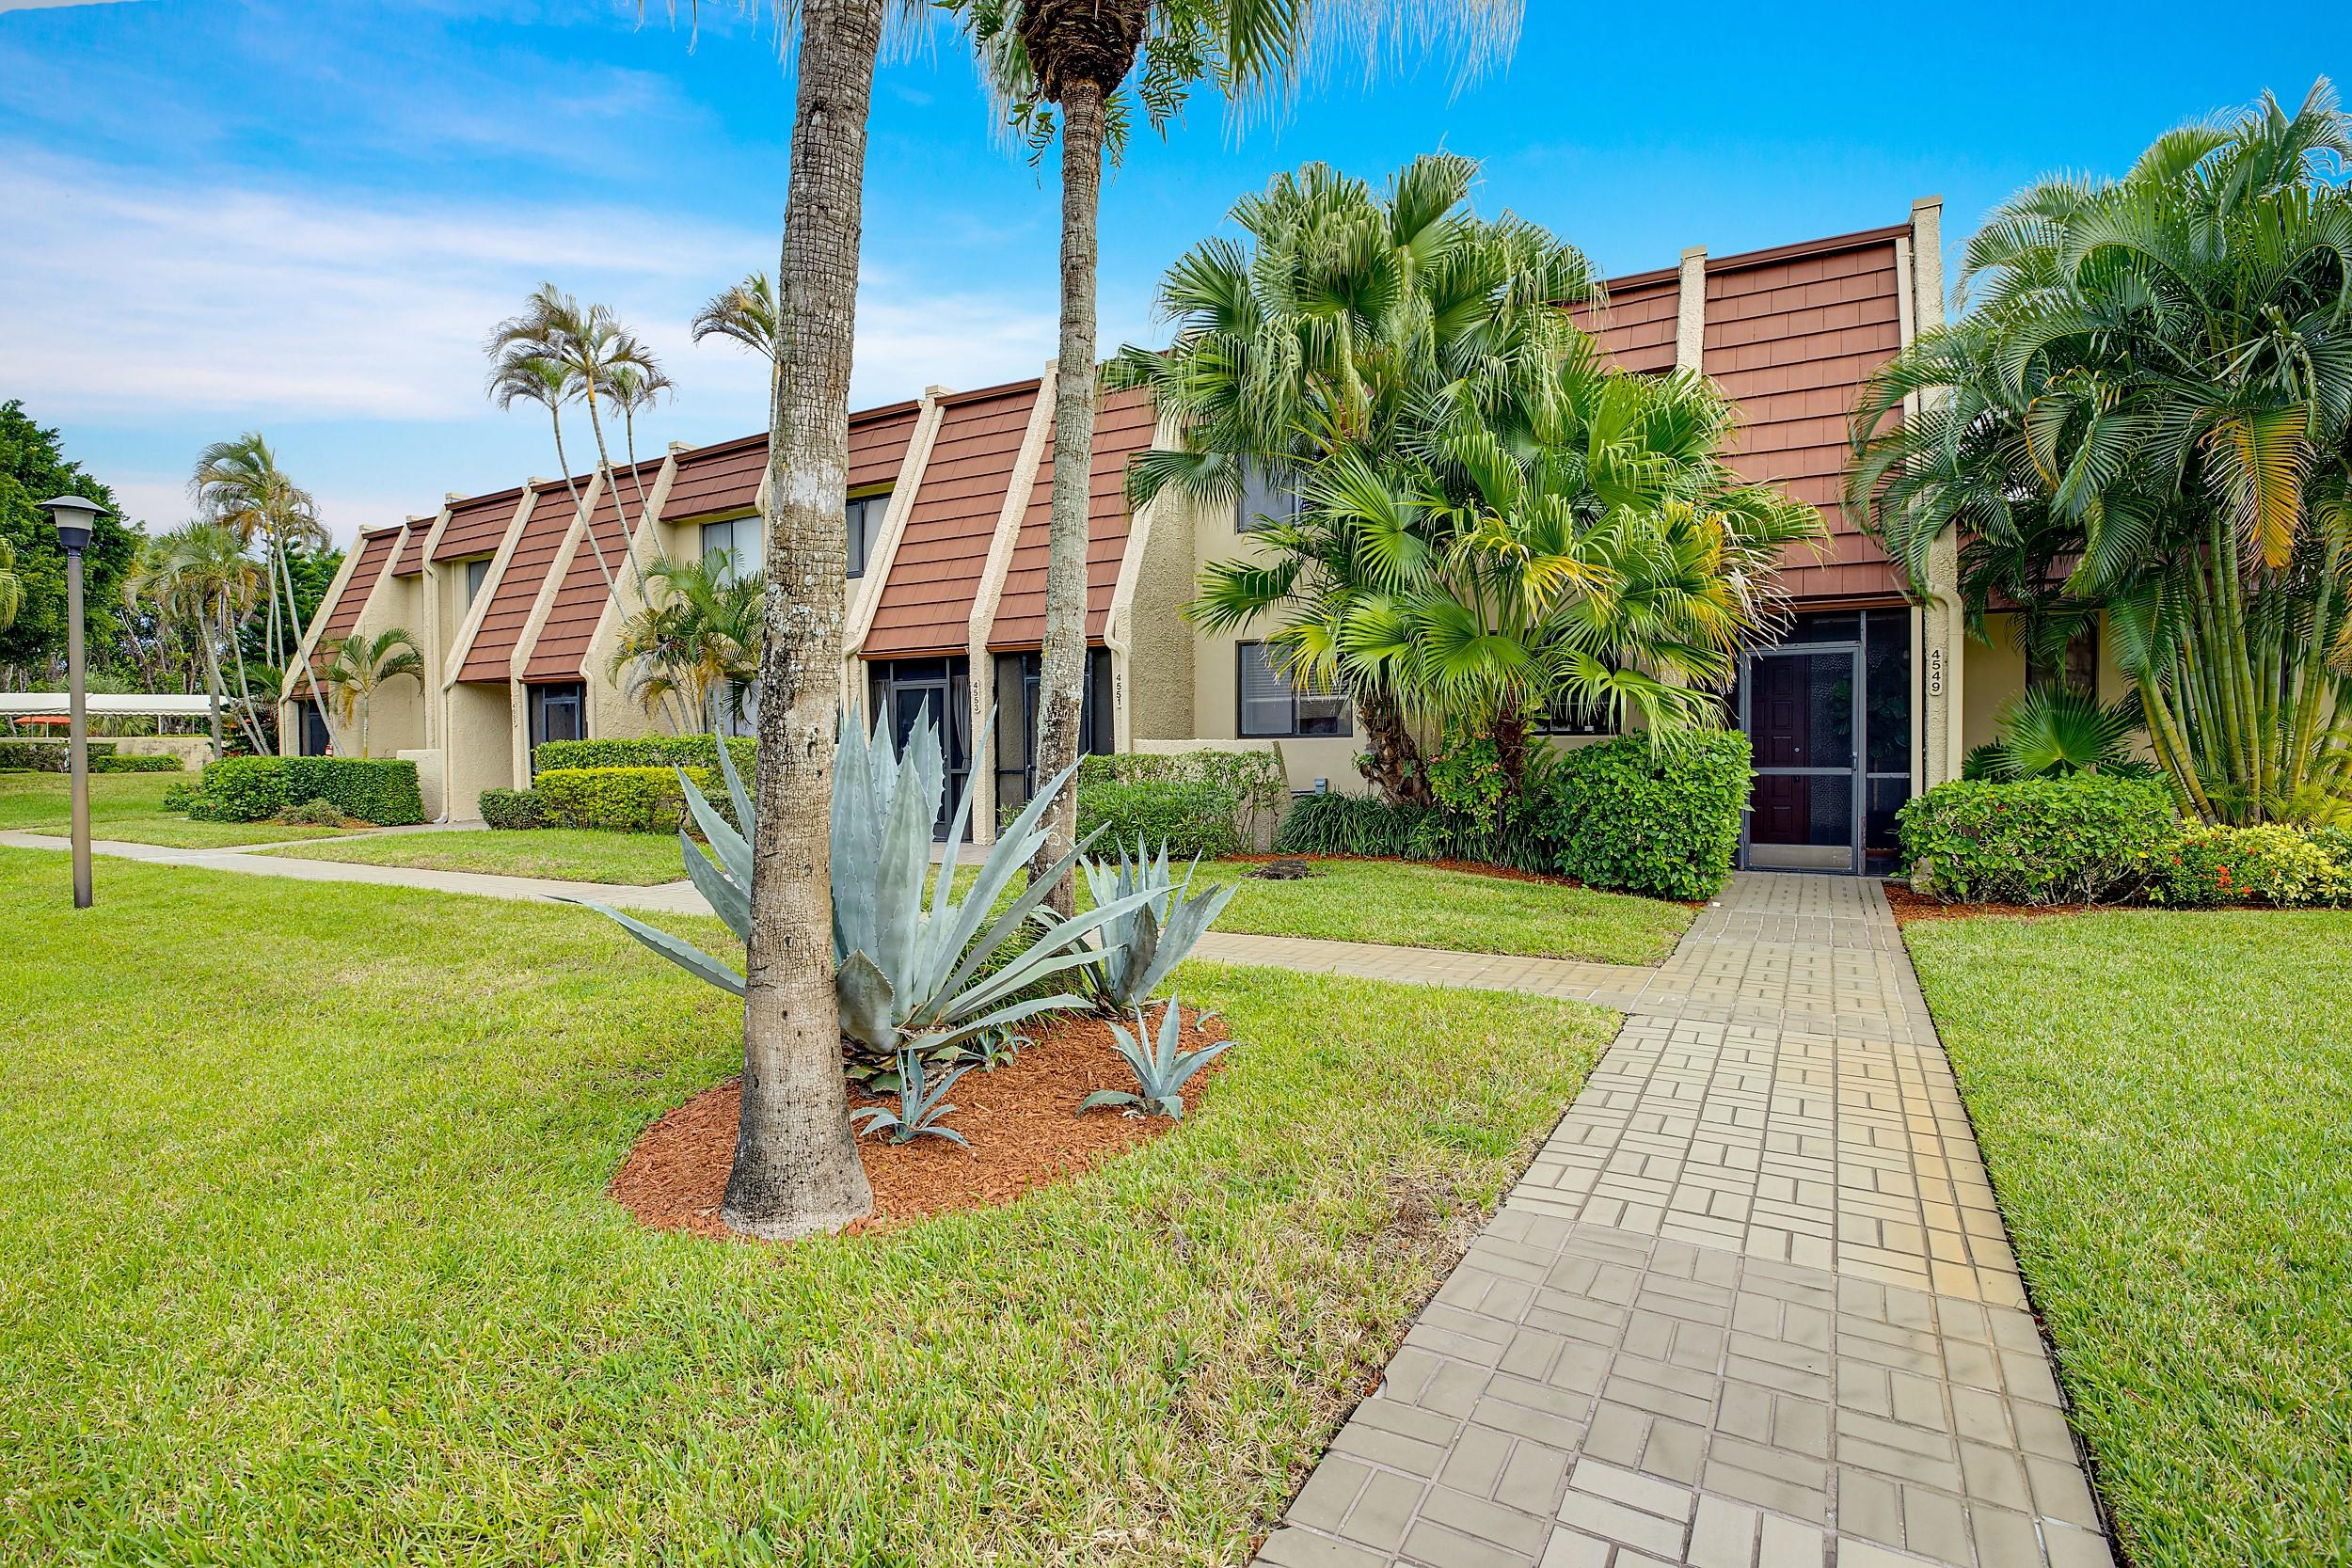 4549 Luxemburg Court, Lake Worth, Florida 33467, 3 Bedrooms Bedrooms, ,2.1 BathroomsBathrooms,A,Townhouse,Luxemburg,RX-10588059